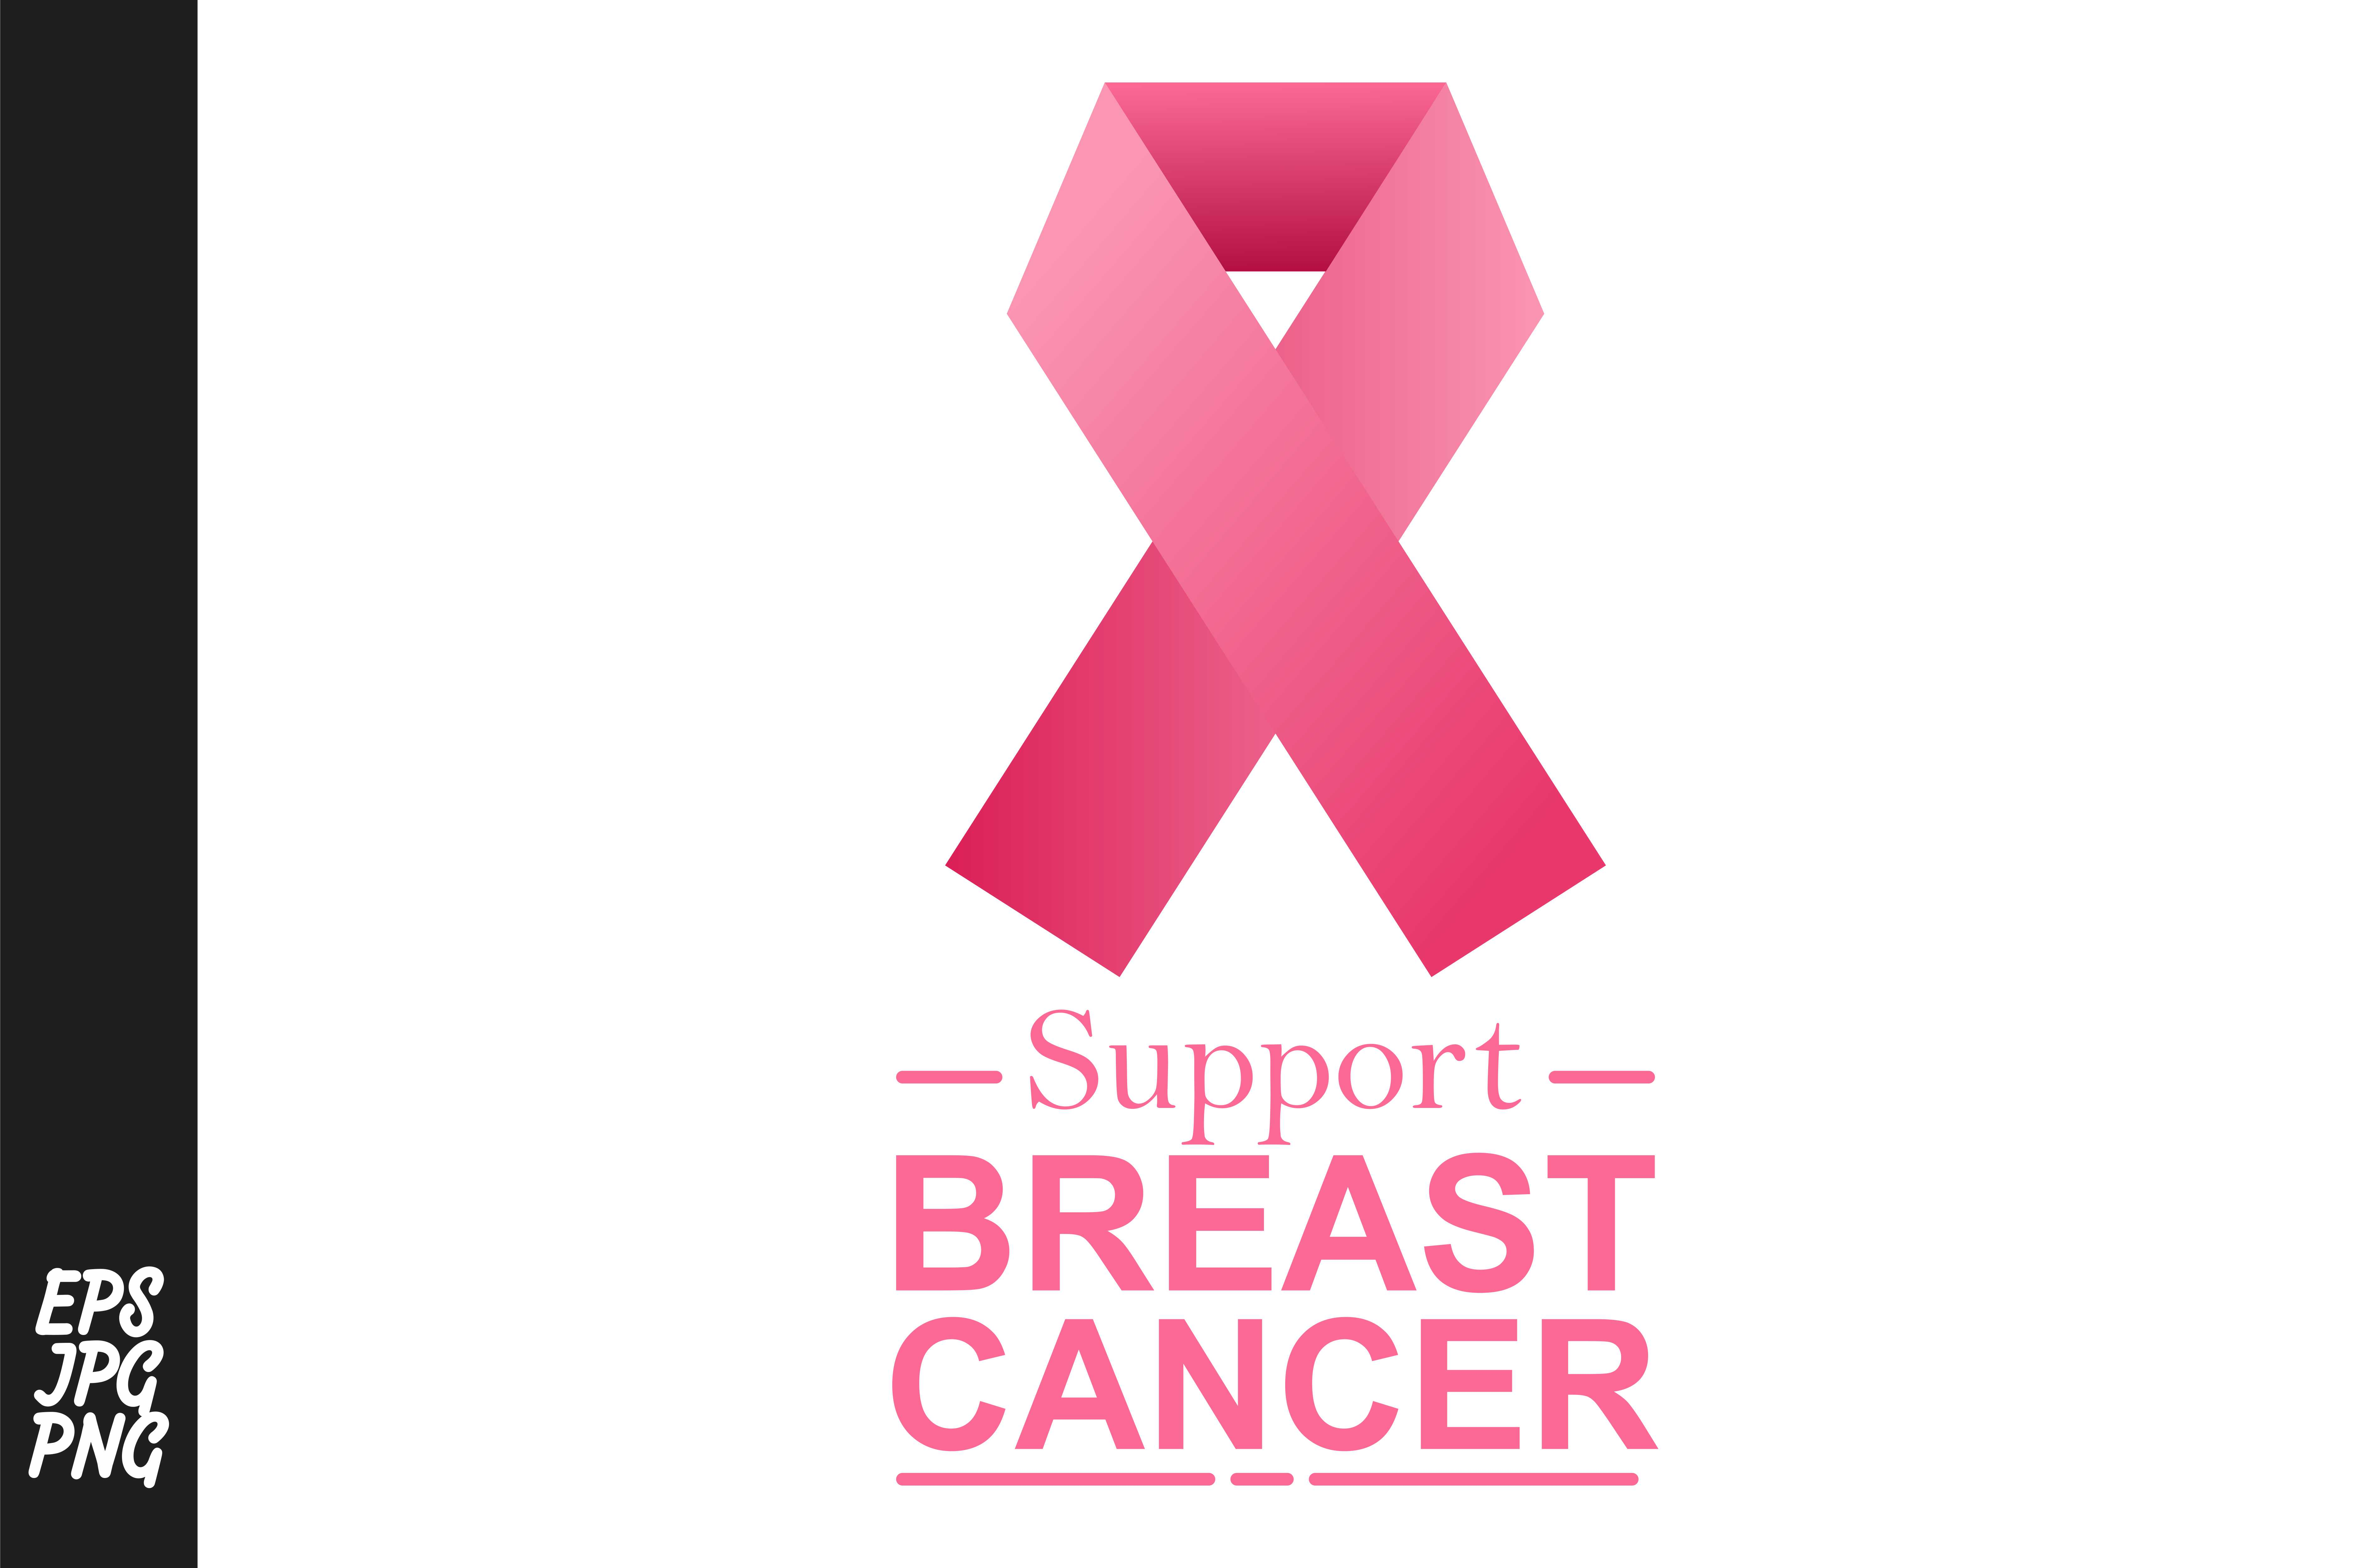 Download Free Breast Cancer Graphic By Arief Sapta Adjie Creative Fabrica for Cricut Explore, Silhouette and other cutting machines.